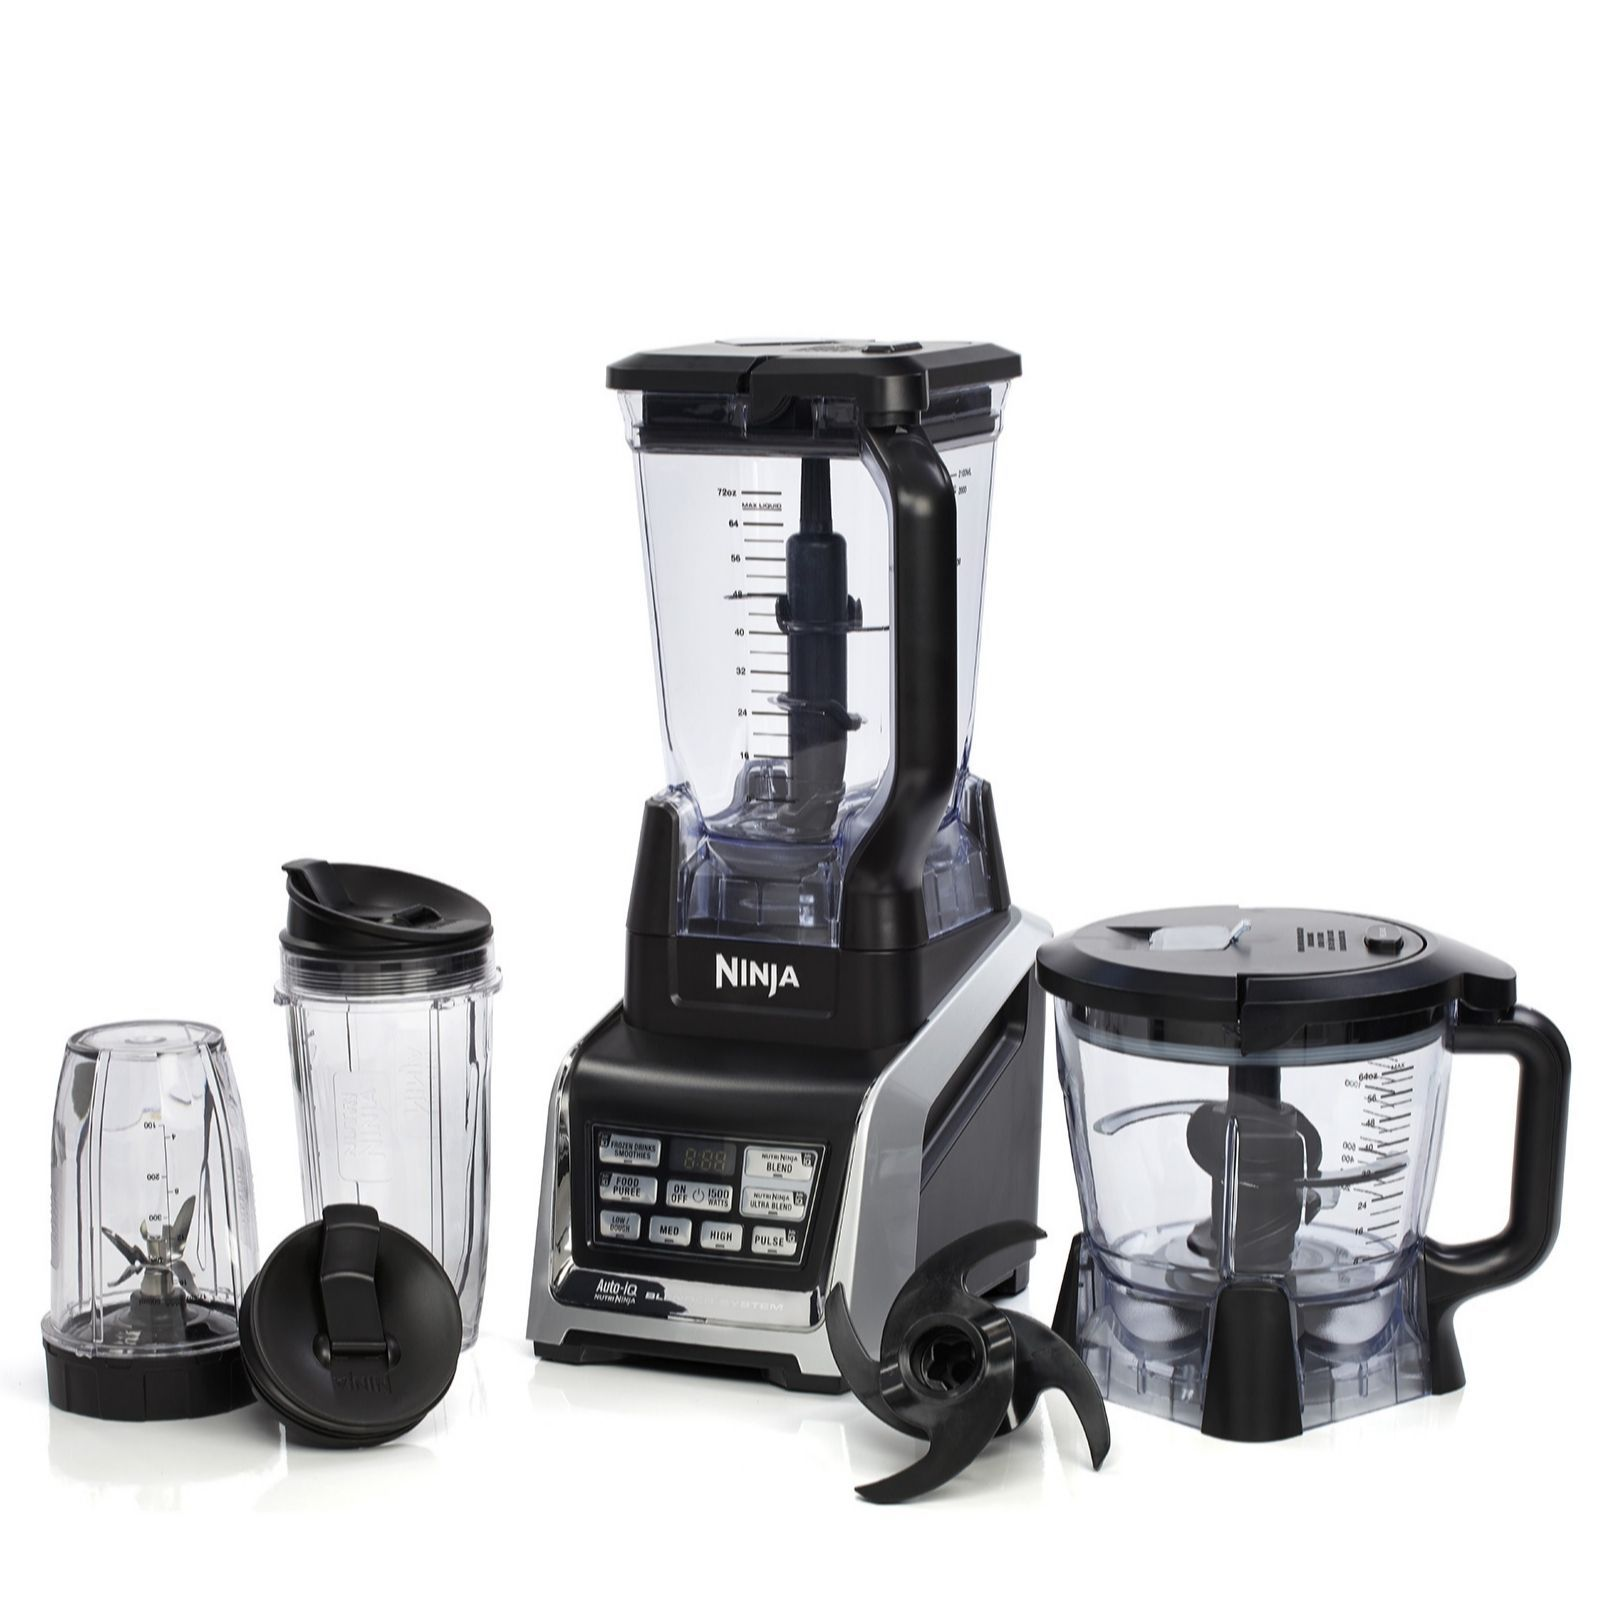 805333 - Ninja BL682 Kitchen System with Nutri Ninja and Additional ...